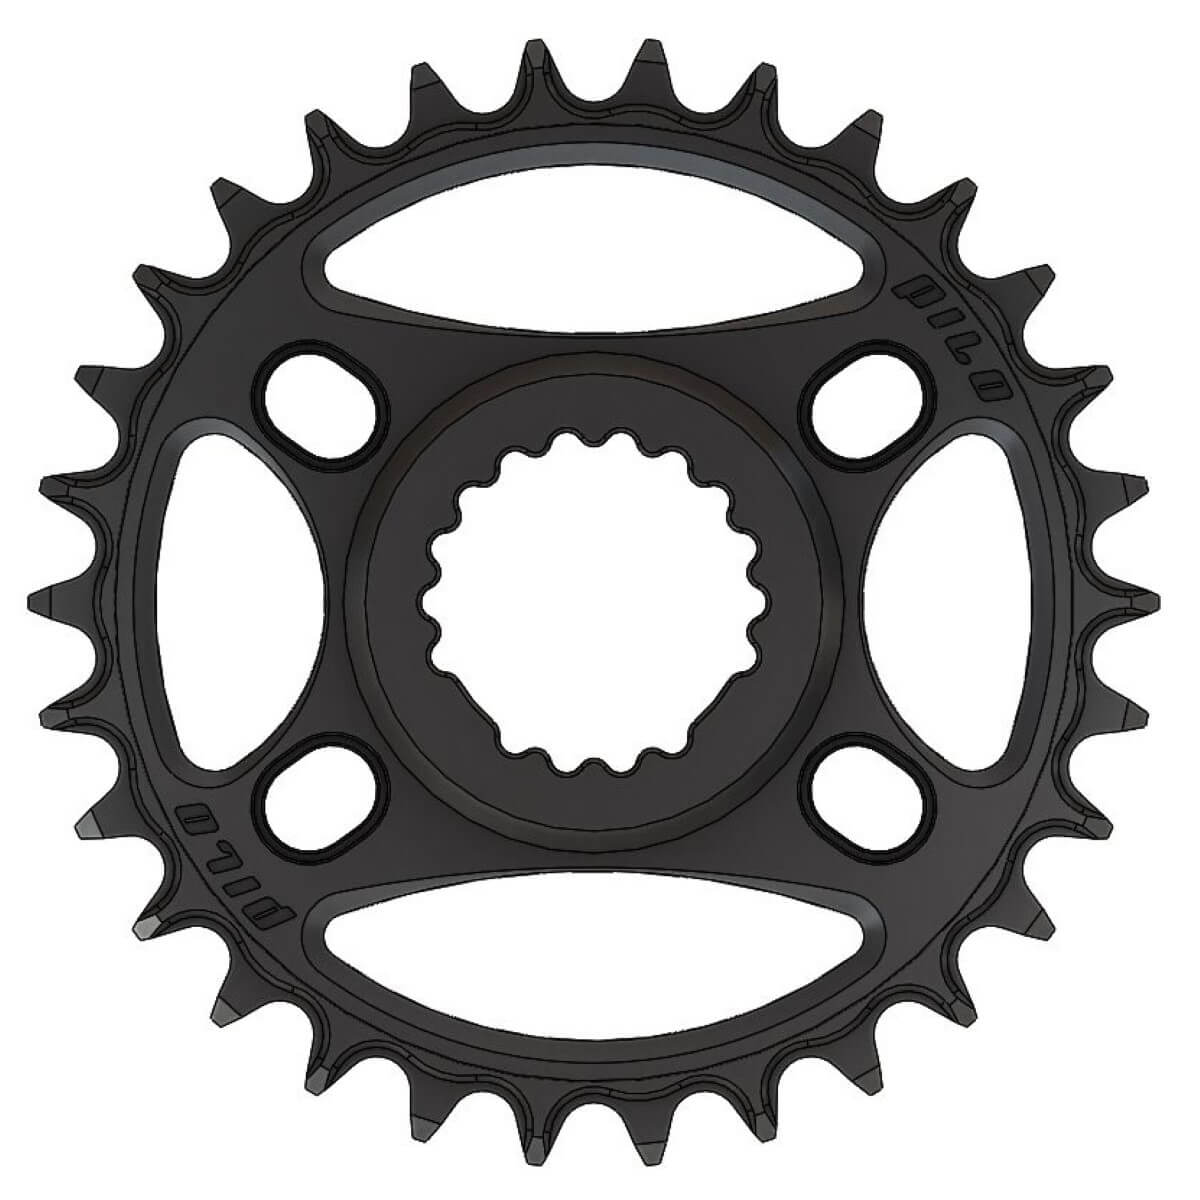 Pilo C67 Chainring Narrow Wide 30T for Cannondale, FSA direct mount